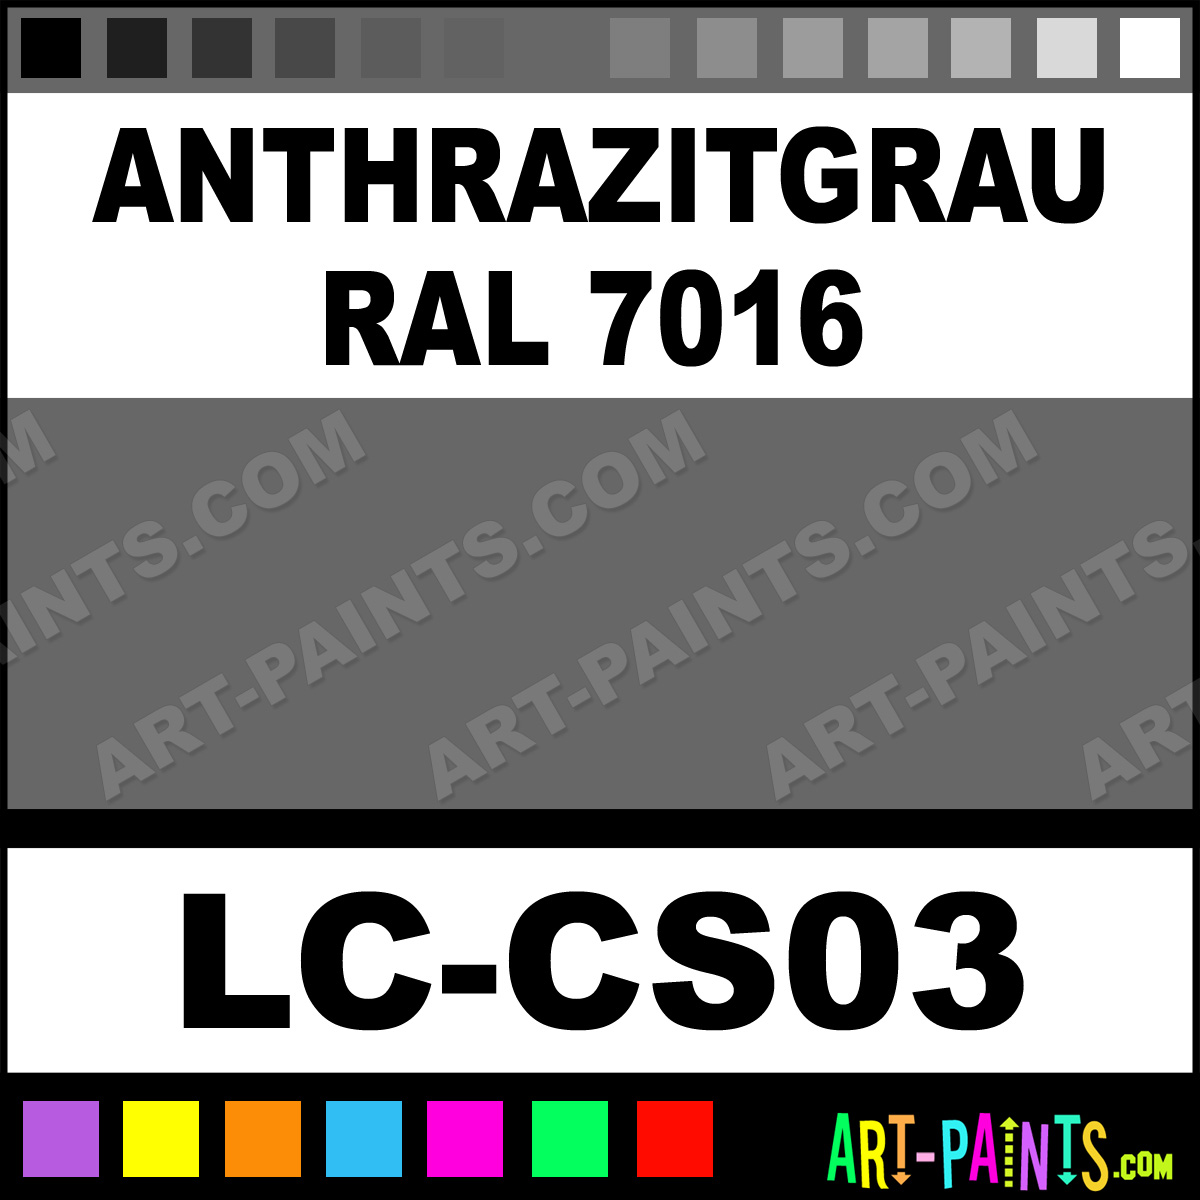 anthrazitgrau ral 7016 german tanks wwii 6 airbrush spray paints lc cs03 anthrazitgrau ral. Black Bedroom Furniture Sets. Home Design Ideas